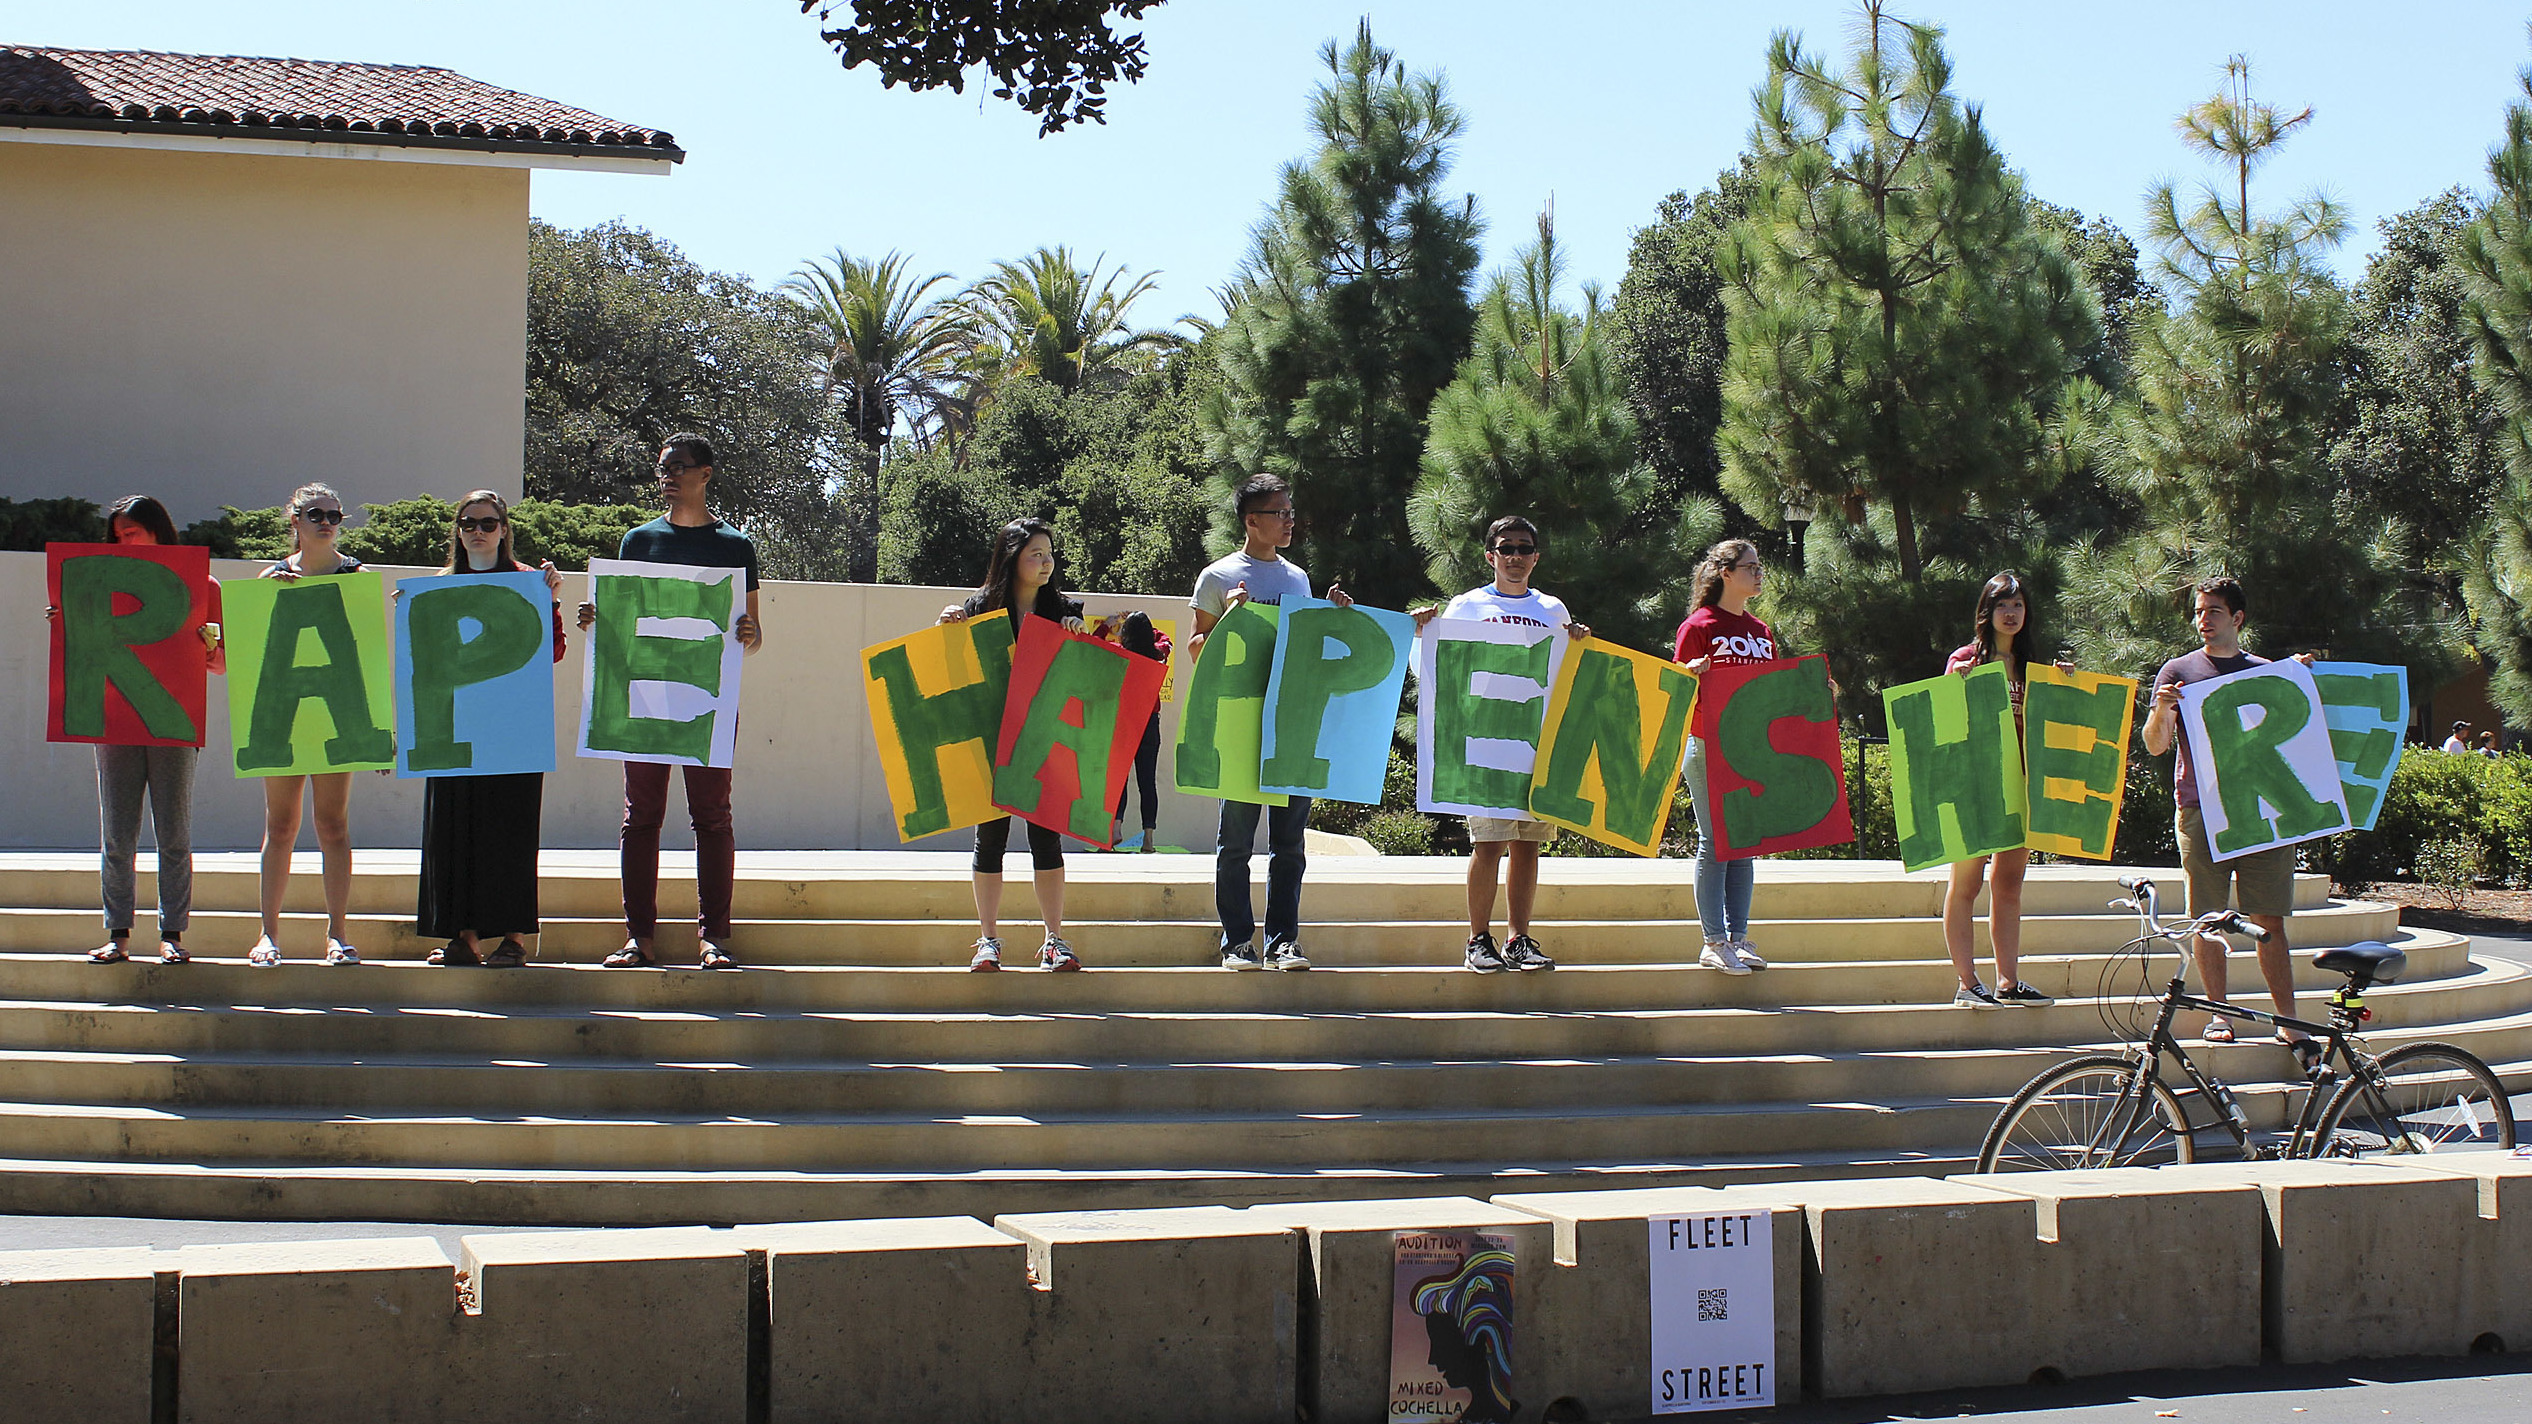 Stanford has found itself in a string of high-profile sexual assault cases. During a demonstration last September, students held a sign about rape at the university's White Plaza, during New Student Orientation. Tessa Ormenyi/AP